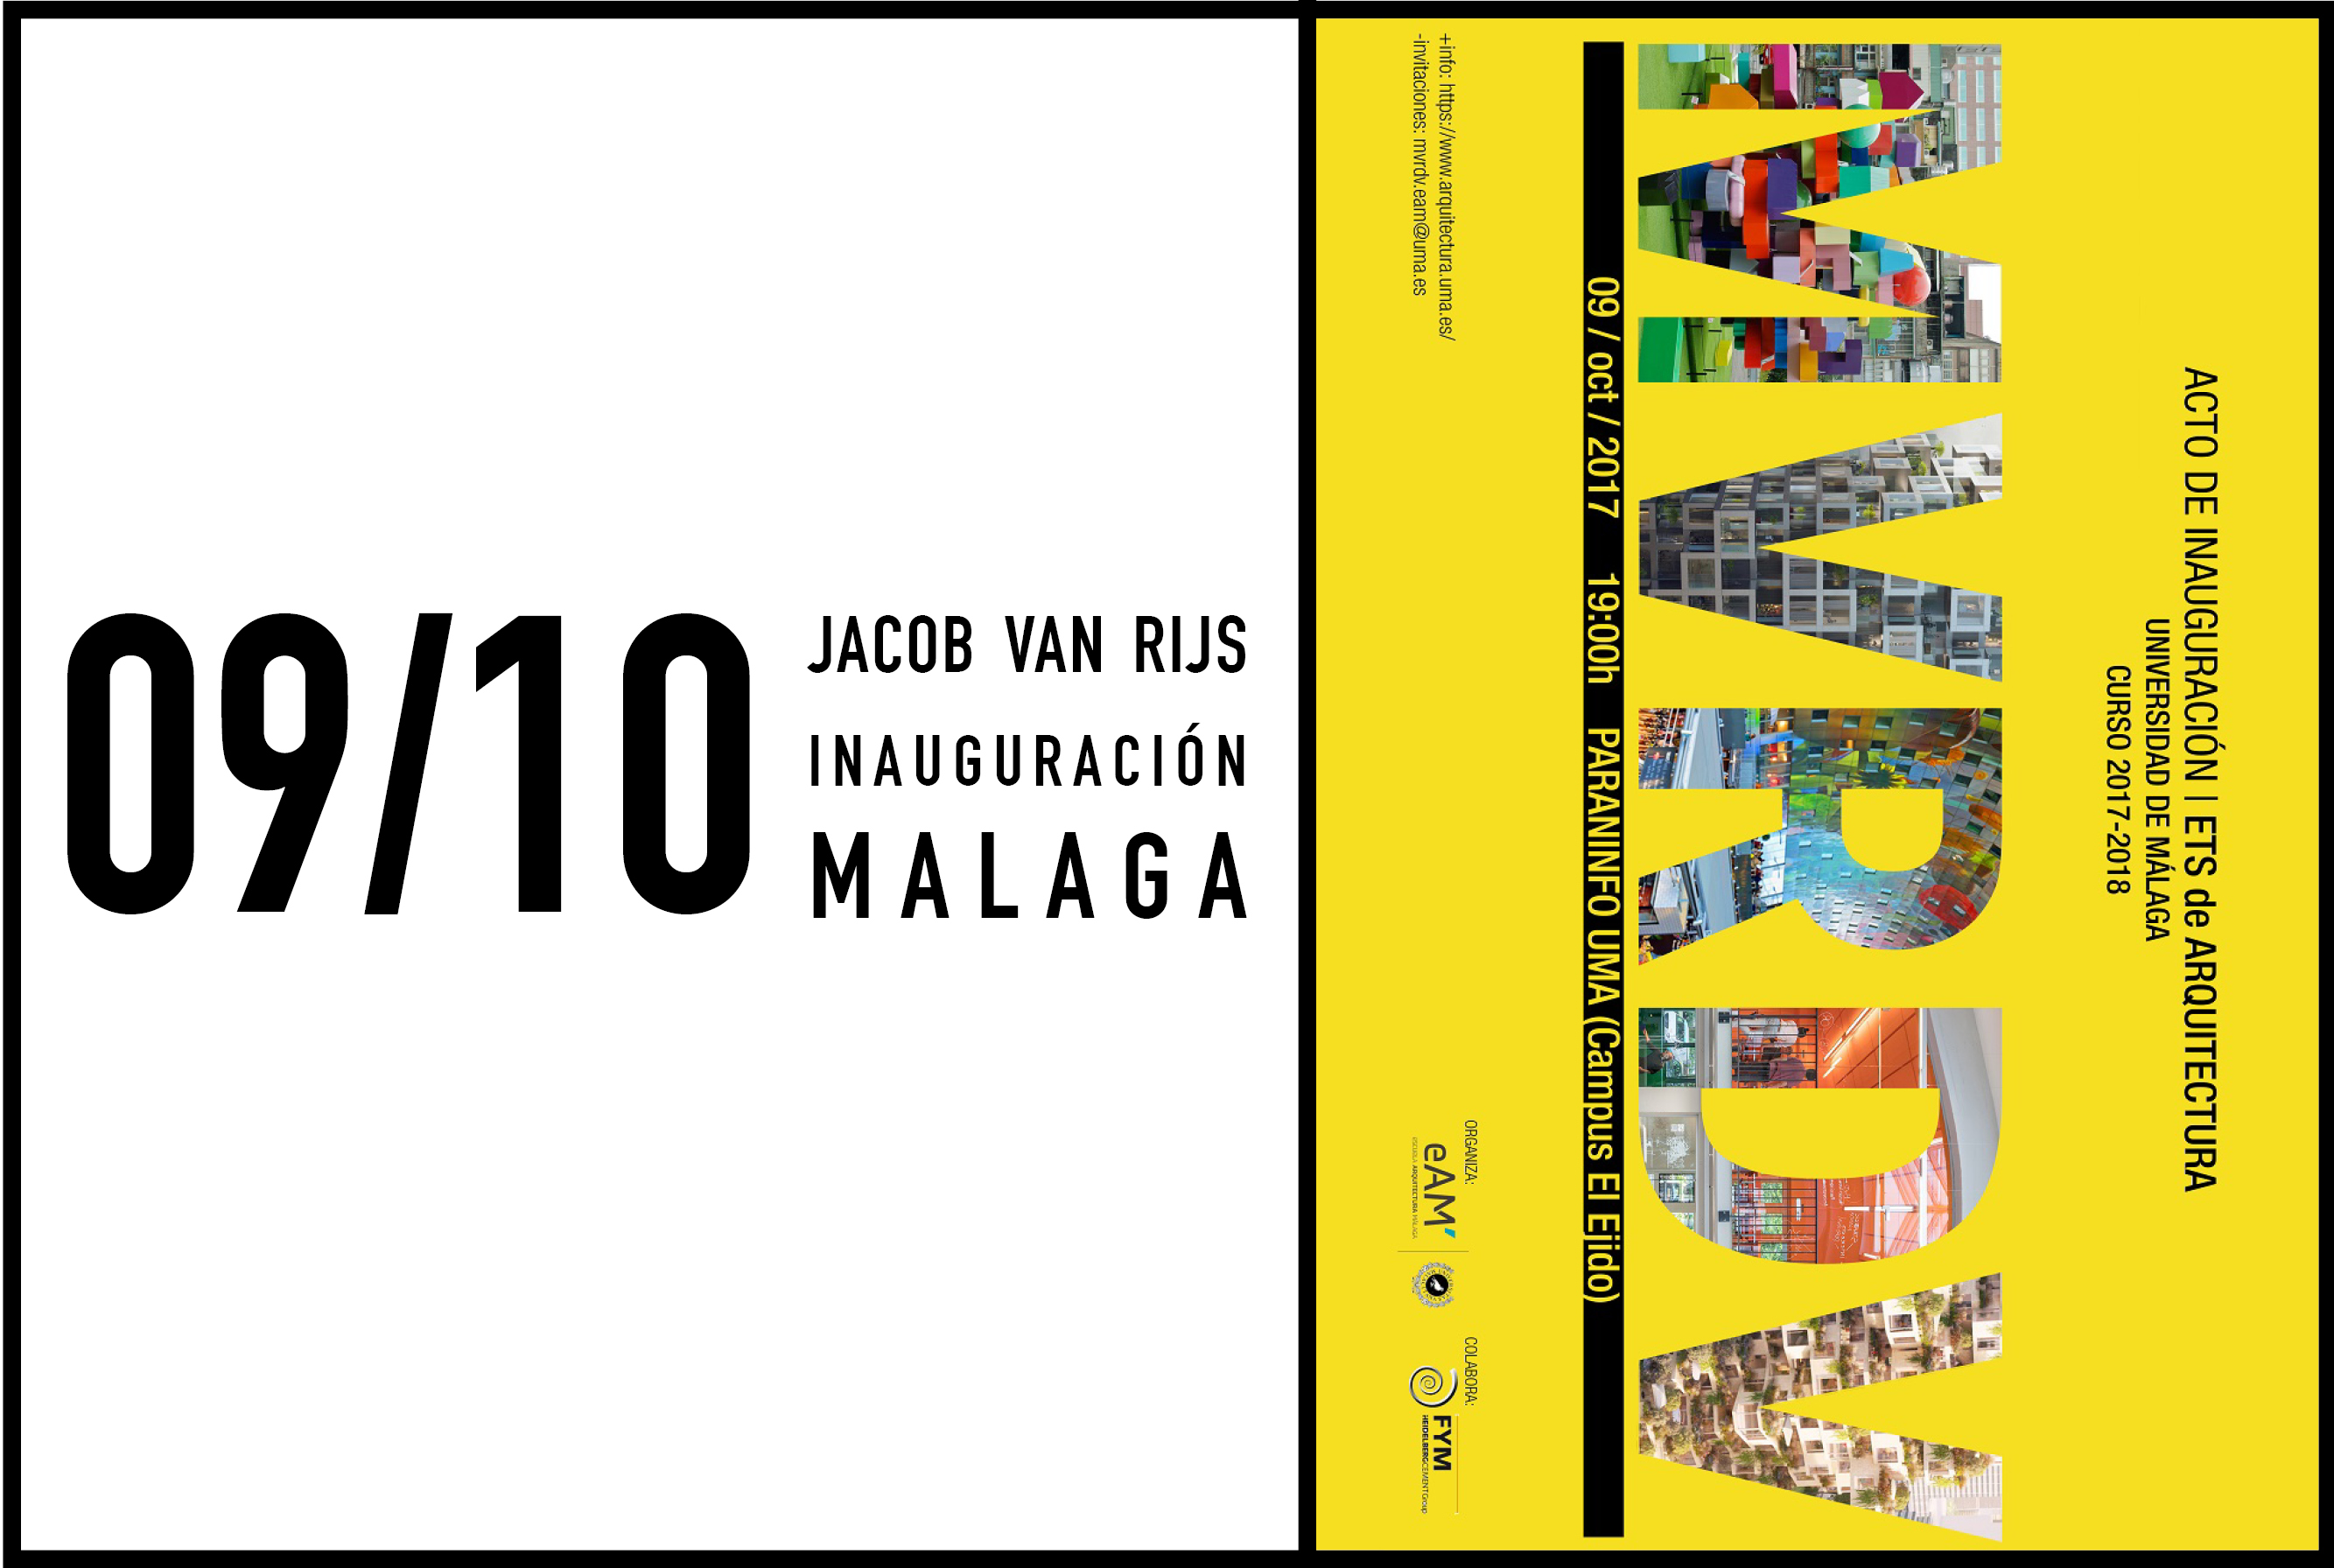 Jacob van Rijs to give inaugural speech at Universidad de Málaga, 9 october 2017